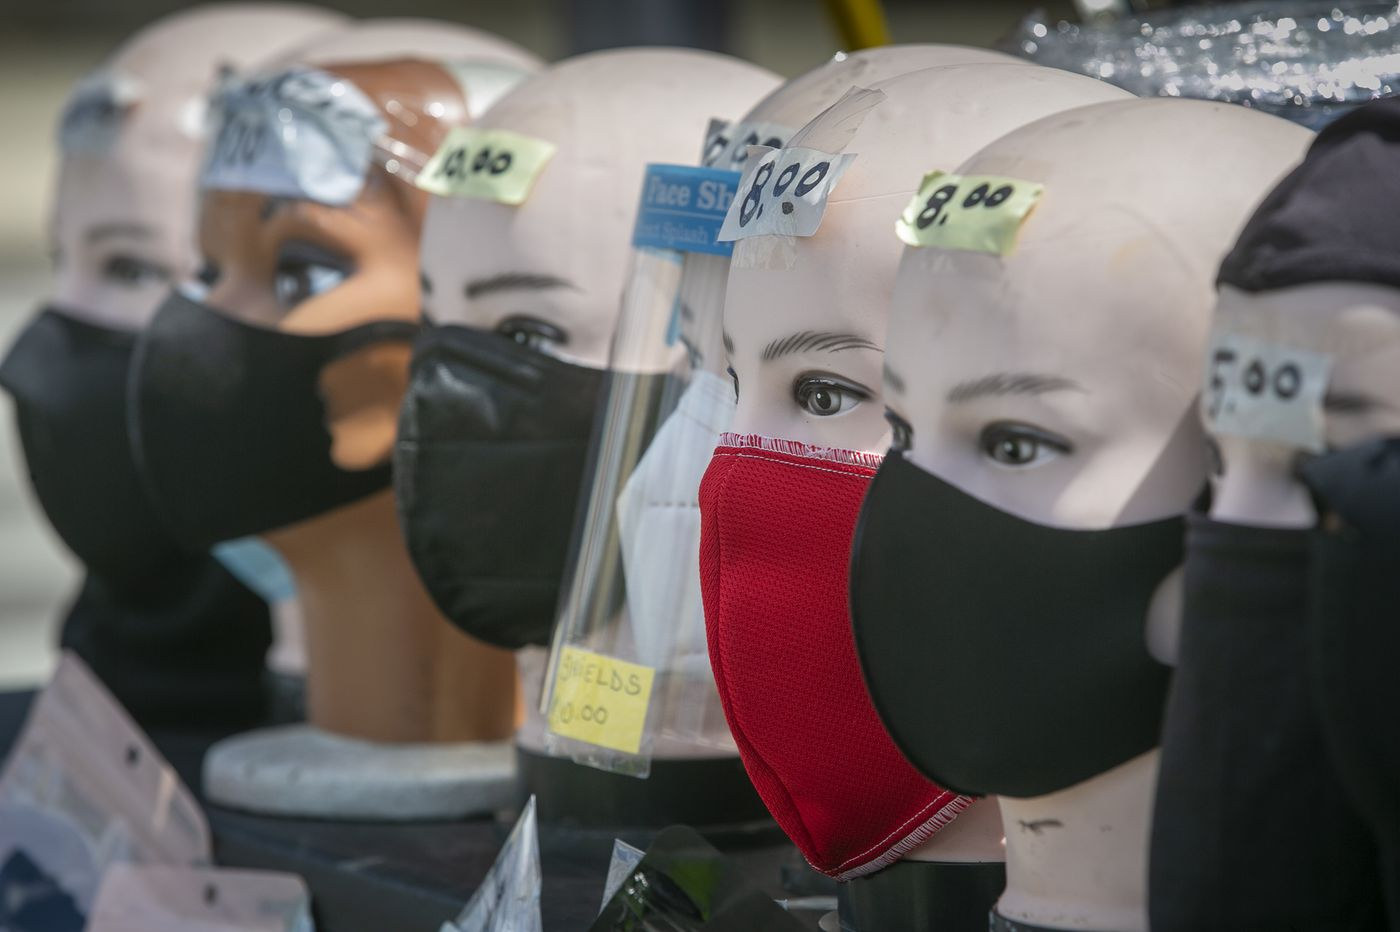 Mask foes are dragging out our collective coronavirus misery | Editorial